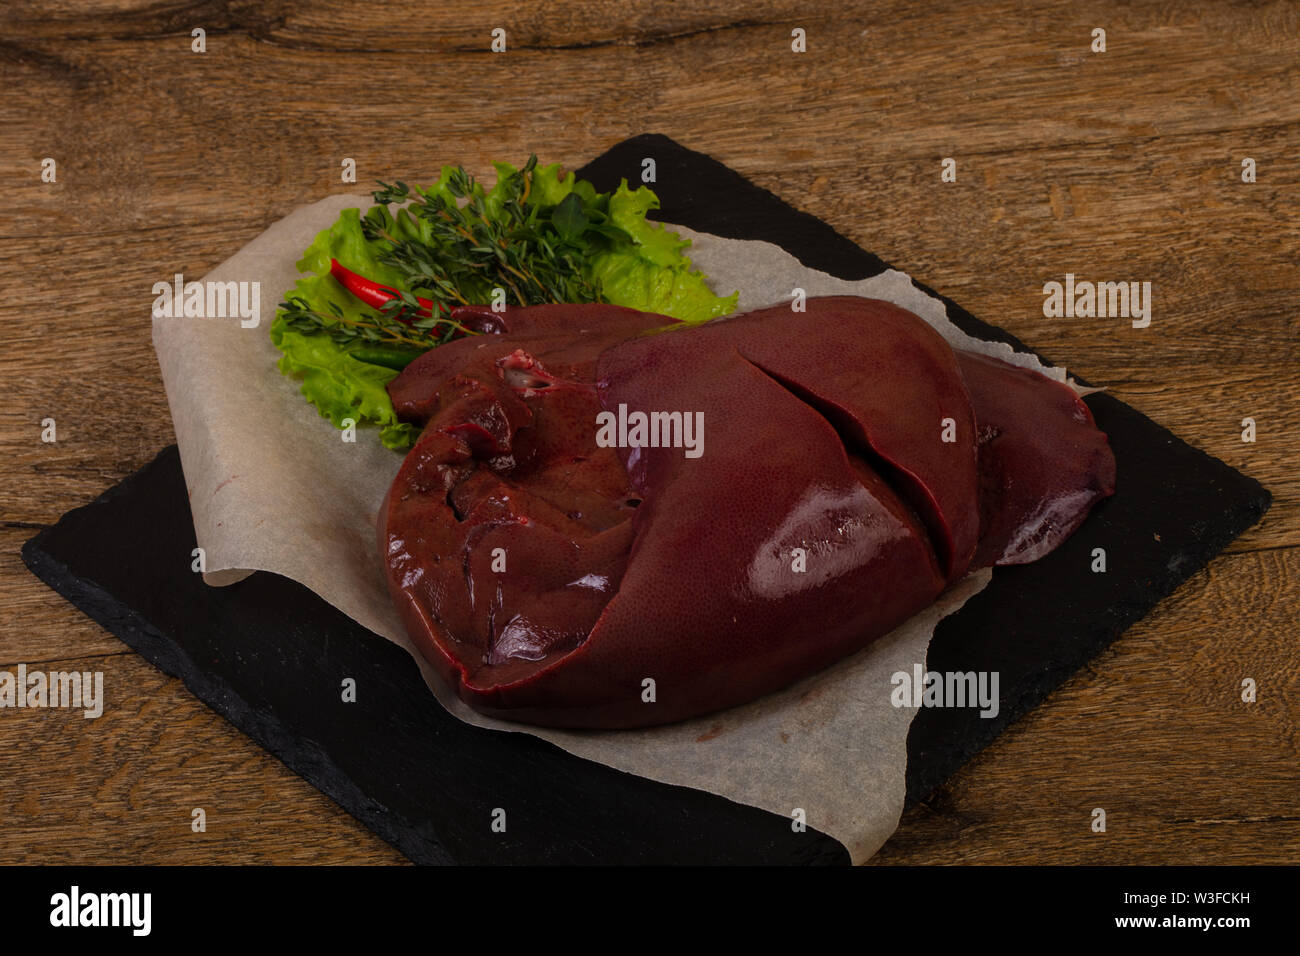 Raw pork Liver ready for cooking - Stock Image